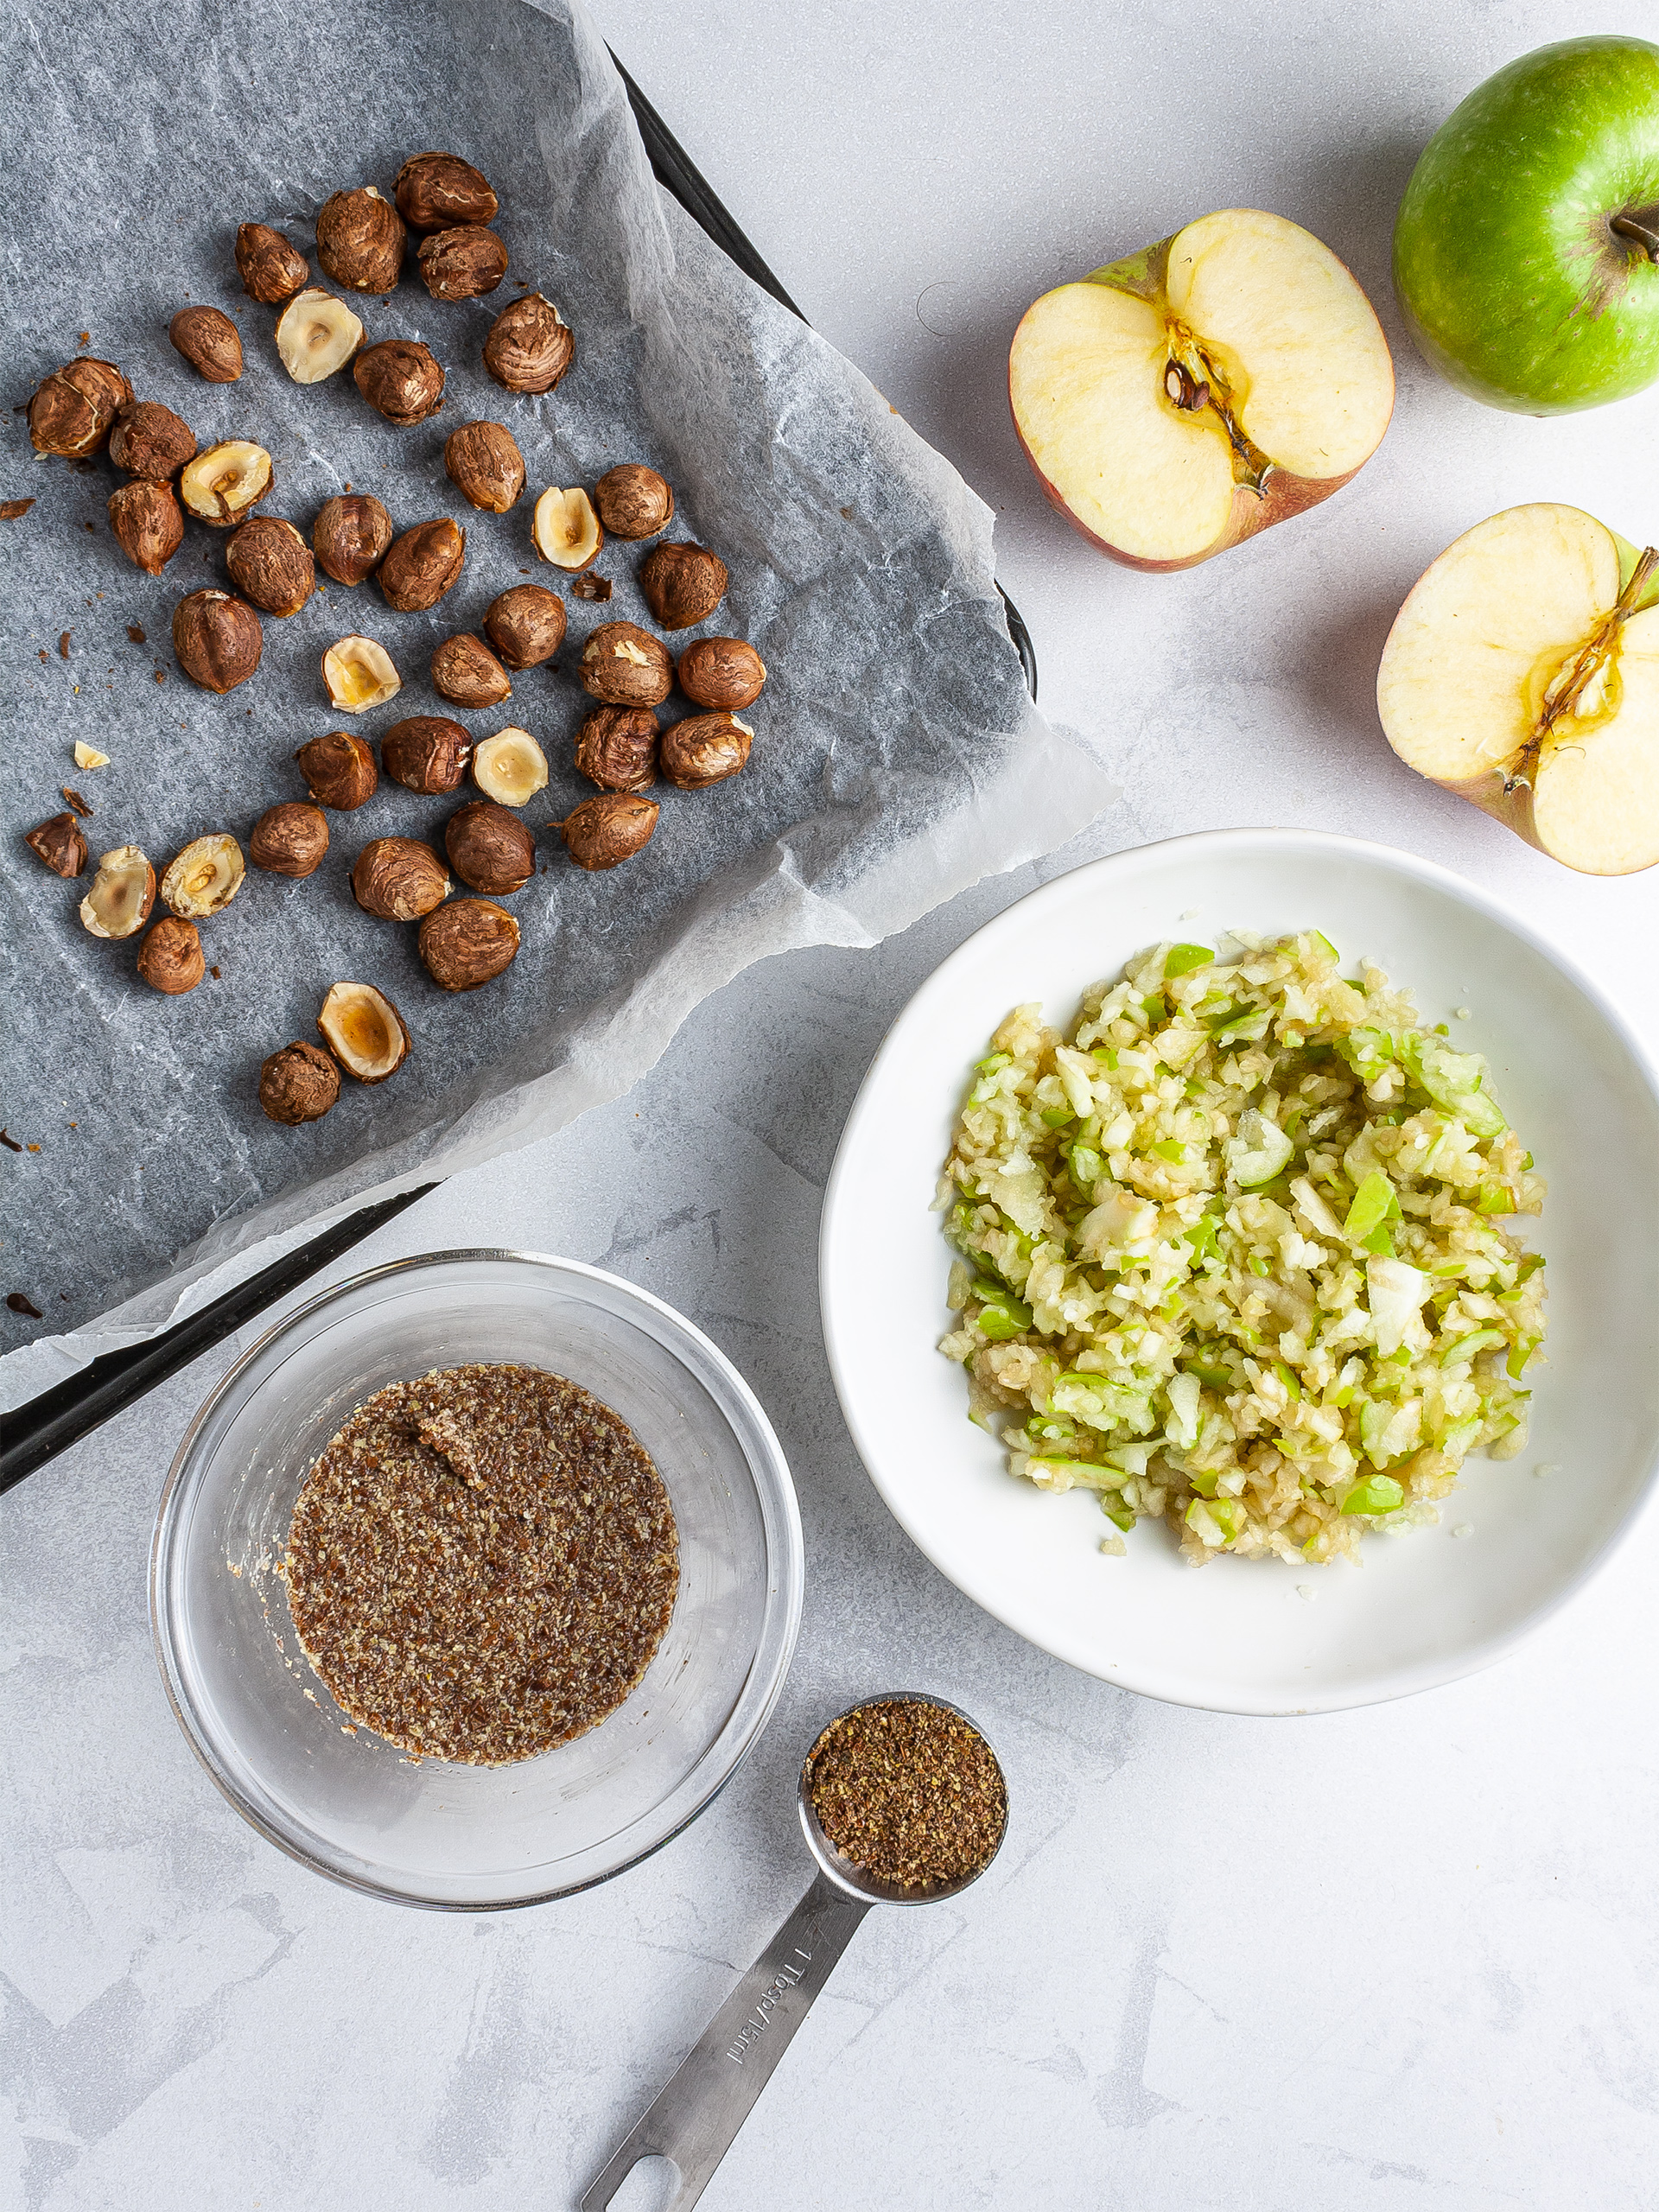 Grated apples, flaxseeds and roasted hazelnuts.